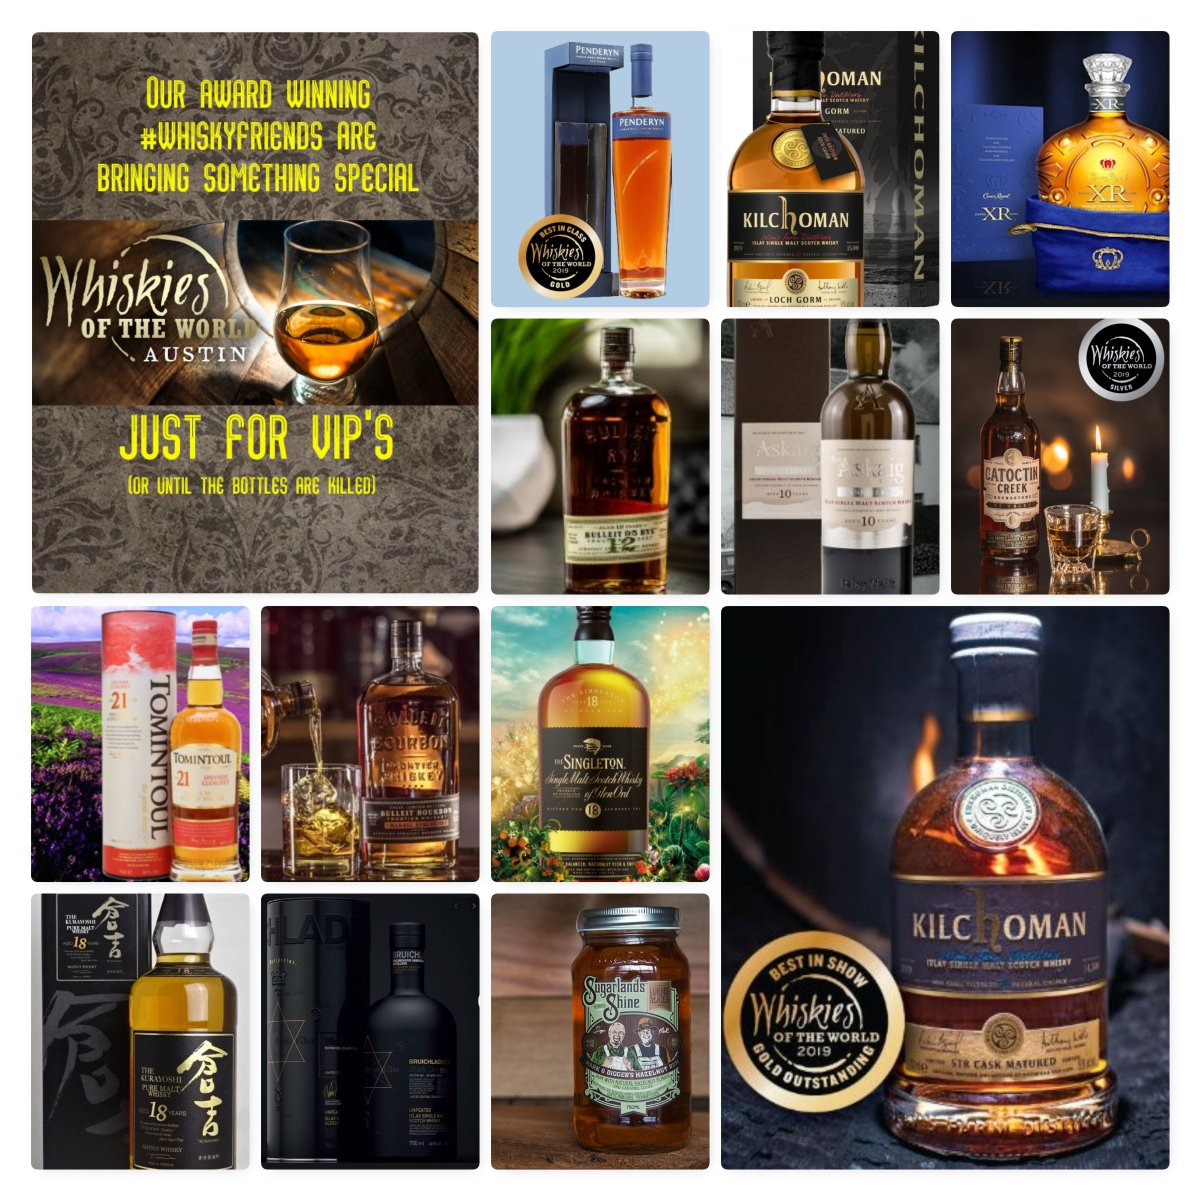 Just a few of our #whiskyfriends who will be coming to #wowaus just to meet you.  #whiskiesoftheworld #wowaus #whisky #scotch #scotchwhisky #whiskey #bourbon #singlemalt #singlegrain #blendedmalt #blendedscotch #blendedgrain #whiskyfriends<br>http://pic.twitter.com/TJ3tQuntY0